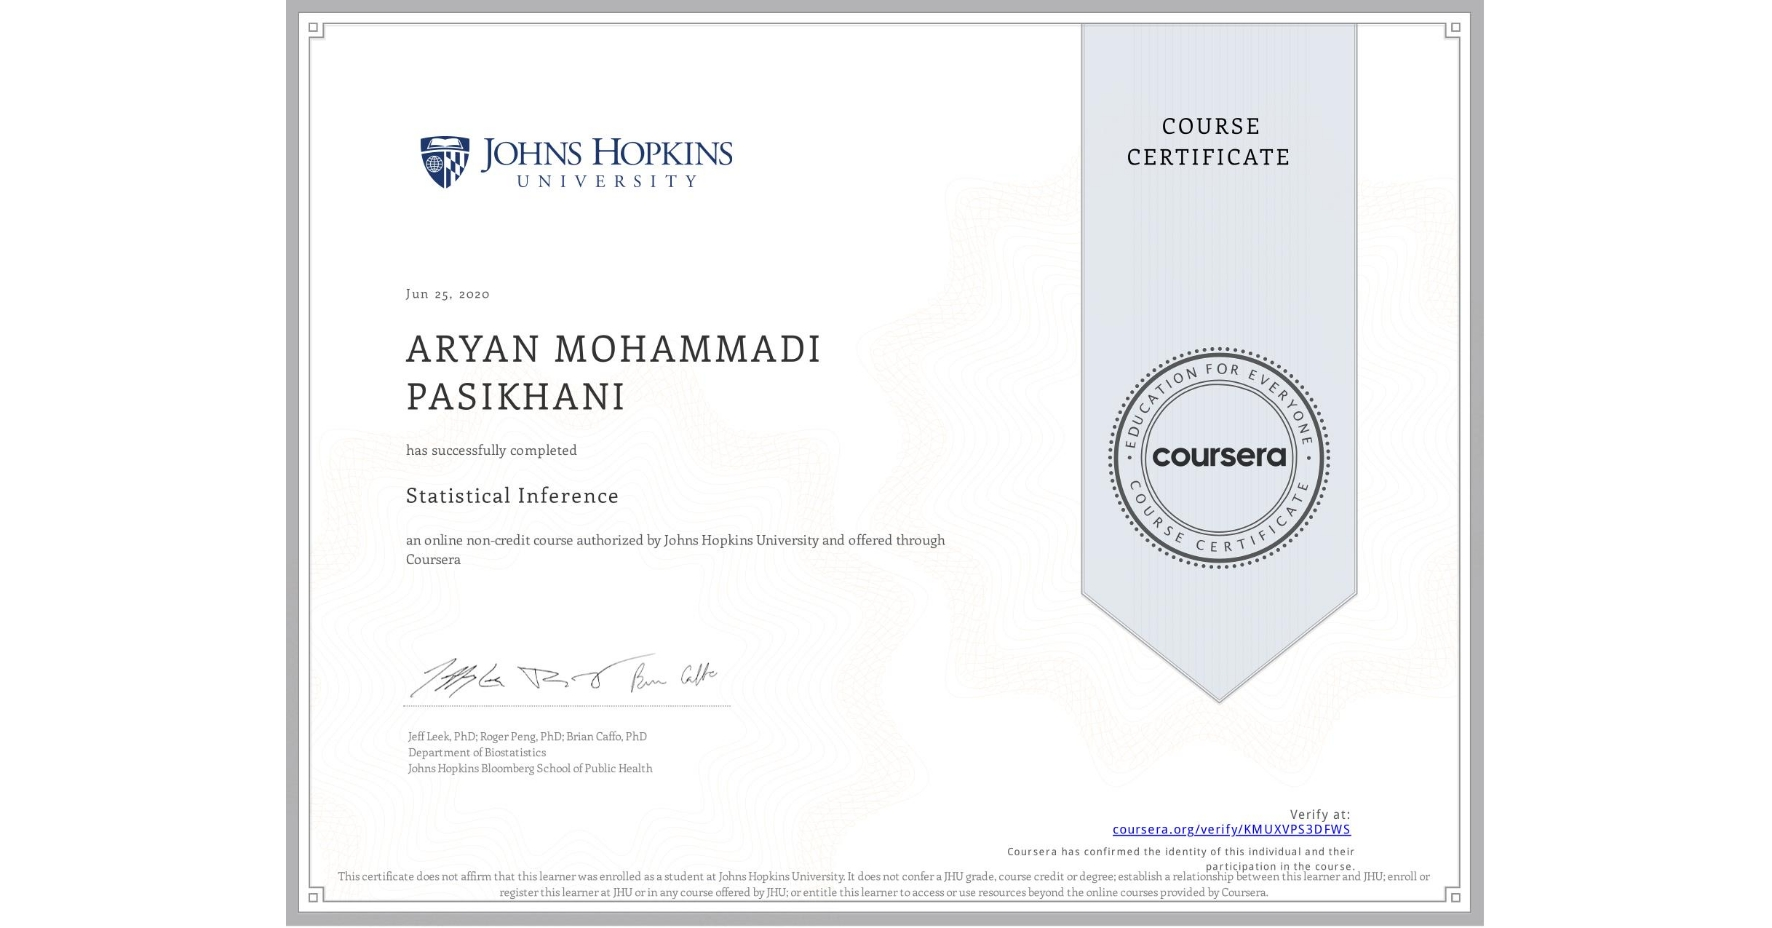 View certificate for ARYAN MOHAMMADI PASIKHANI, Statistical Inference, an online non-credit course authorized by Johns Hopkins University and offered through Coursera